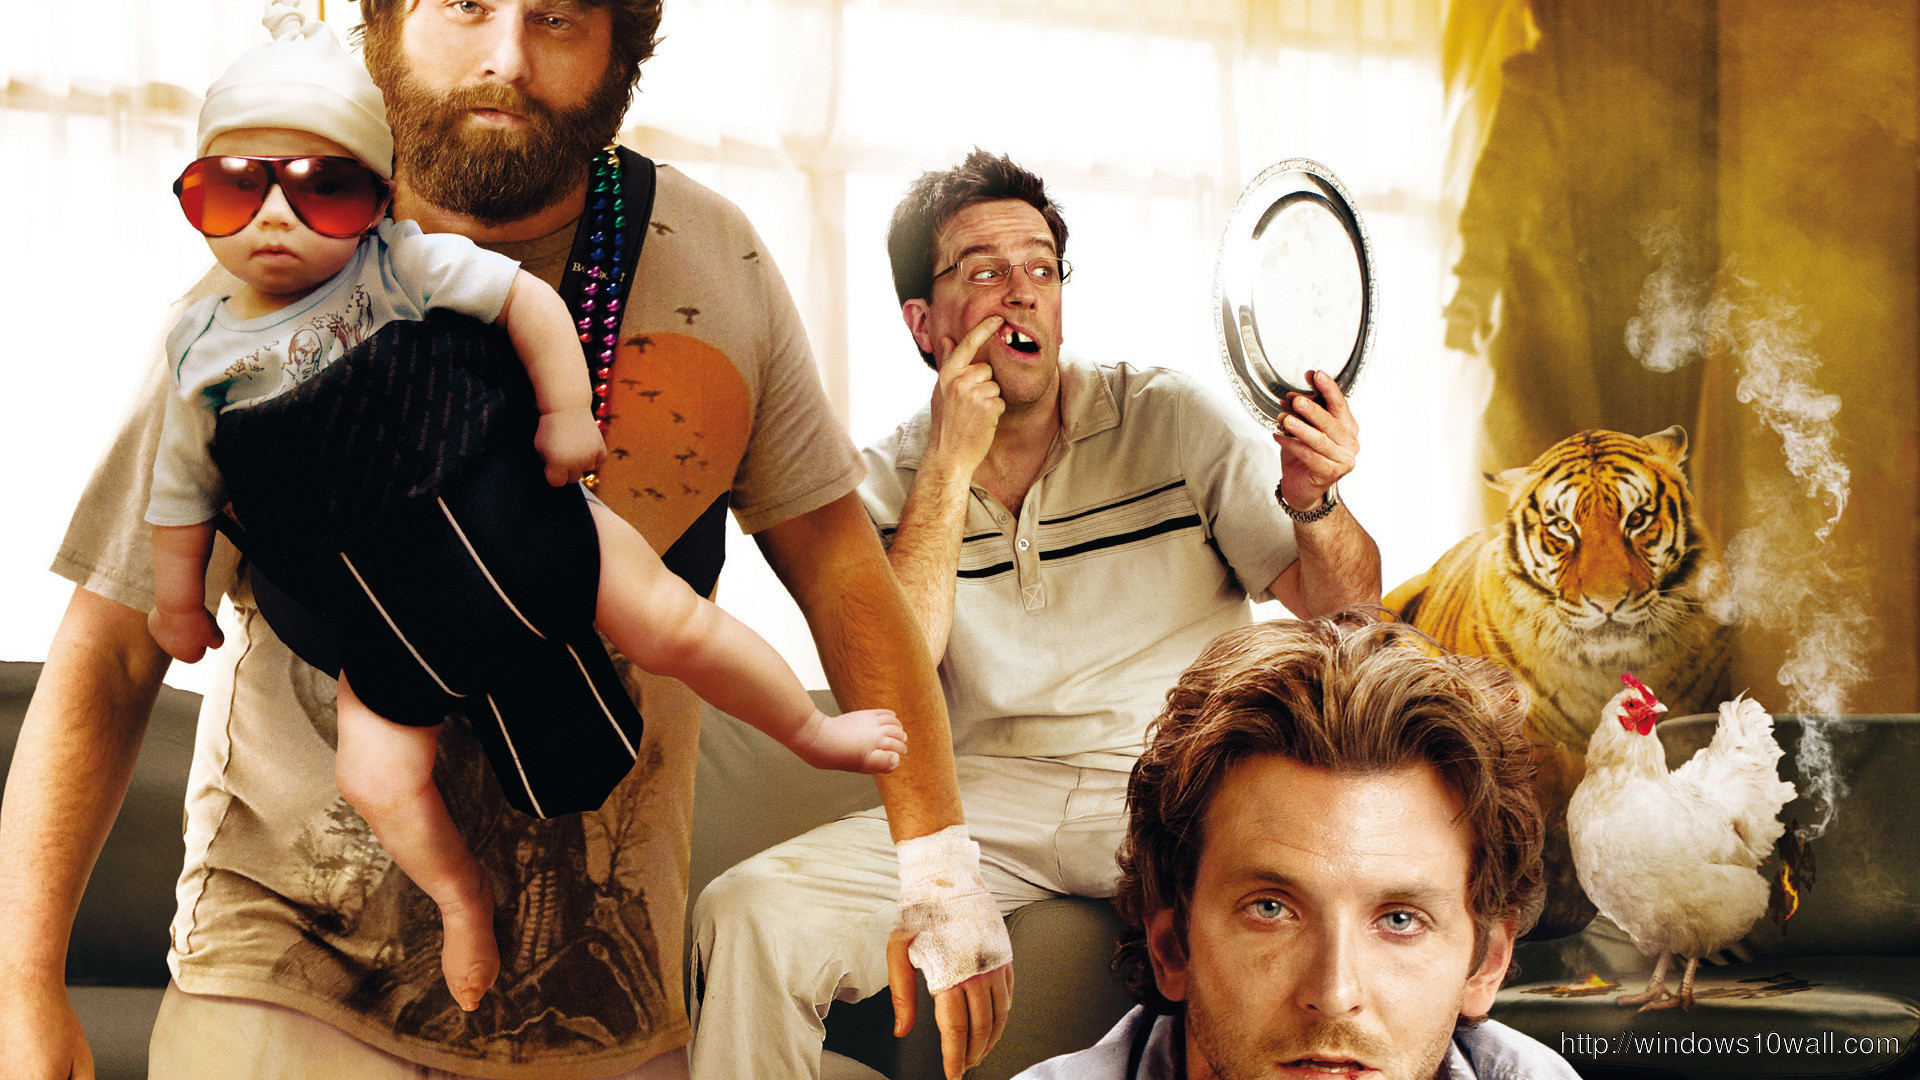 The Wolf Pack The Hangover Ideas Background Wallpaper Windows 10 Wallpapers